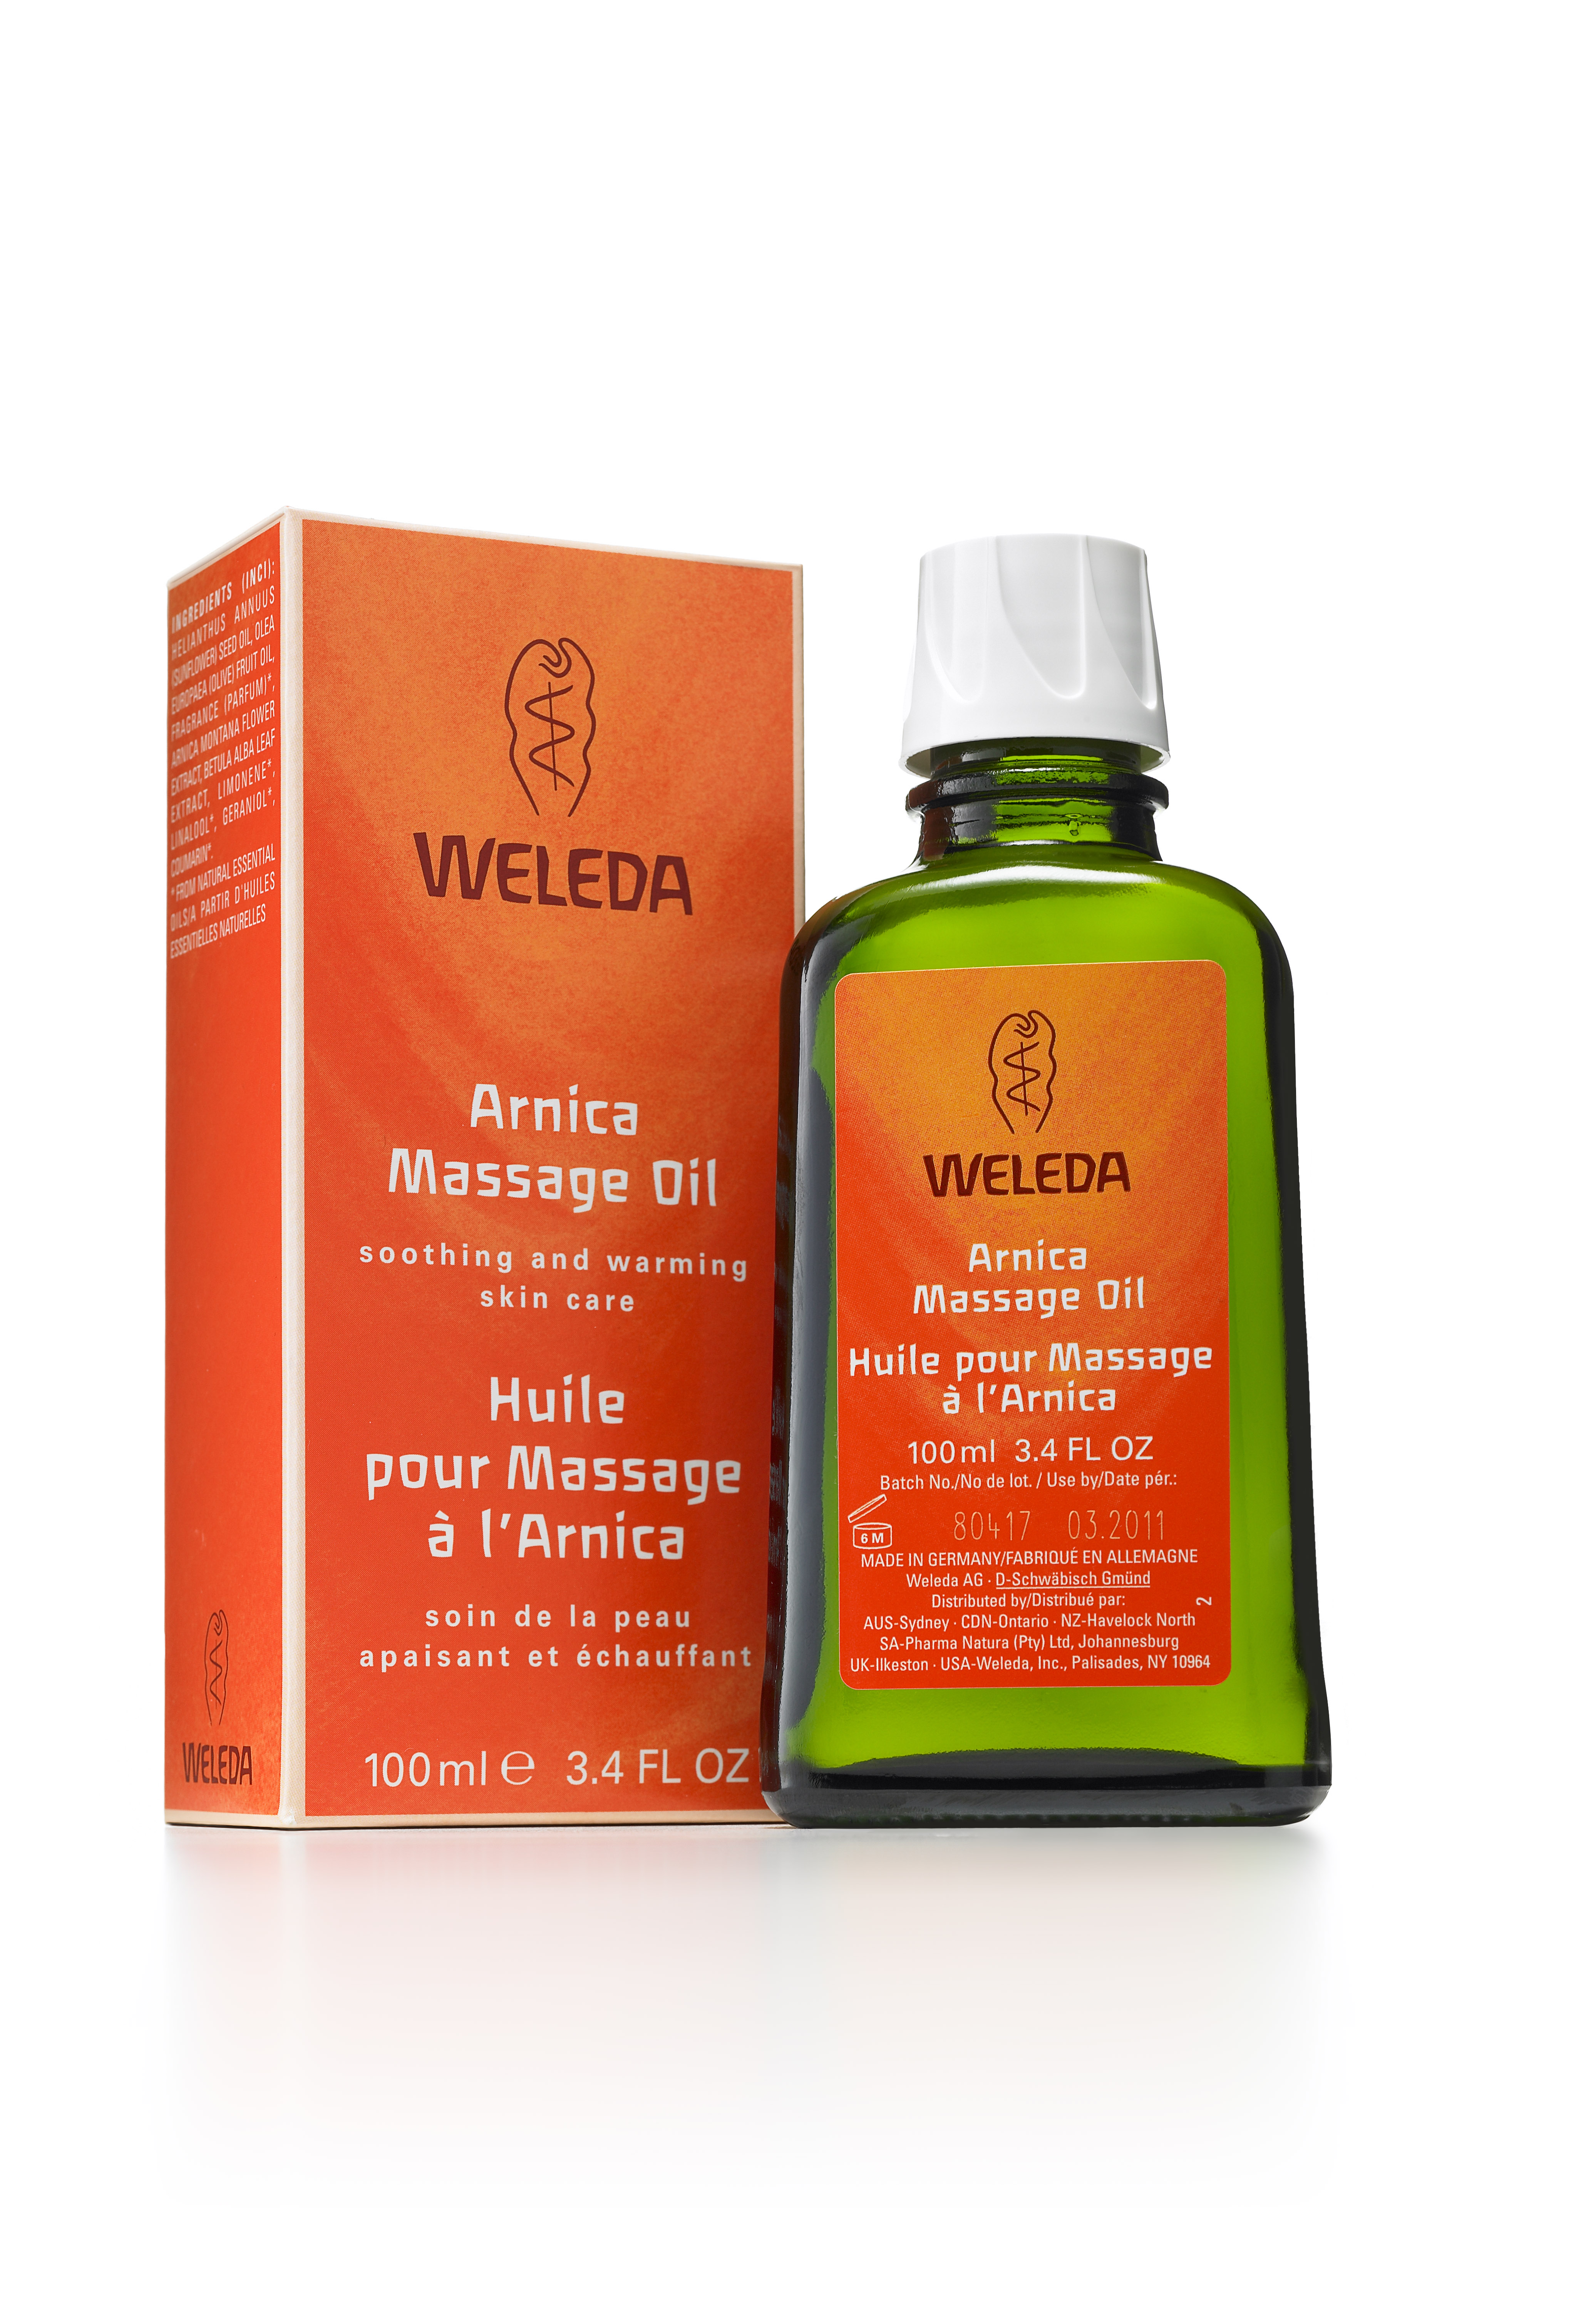 Weleda Arnica Massage Oil Celebrates Milestone Anniversary, MASSAGE Magazine